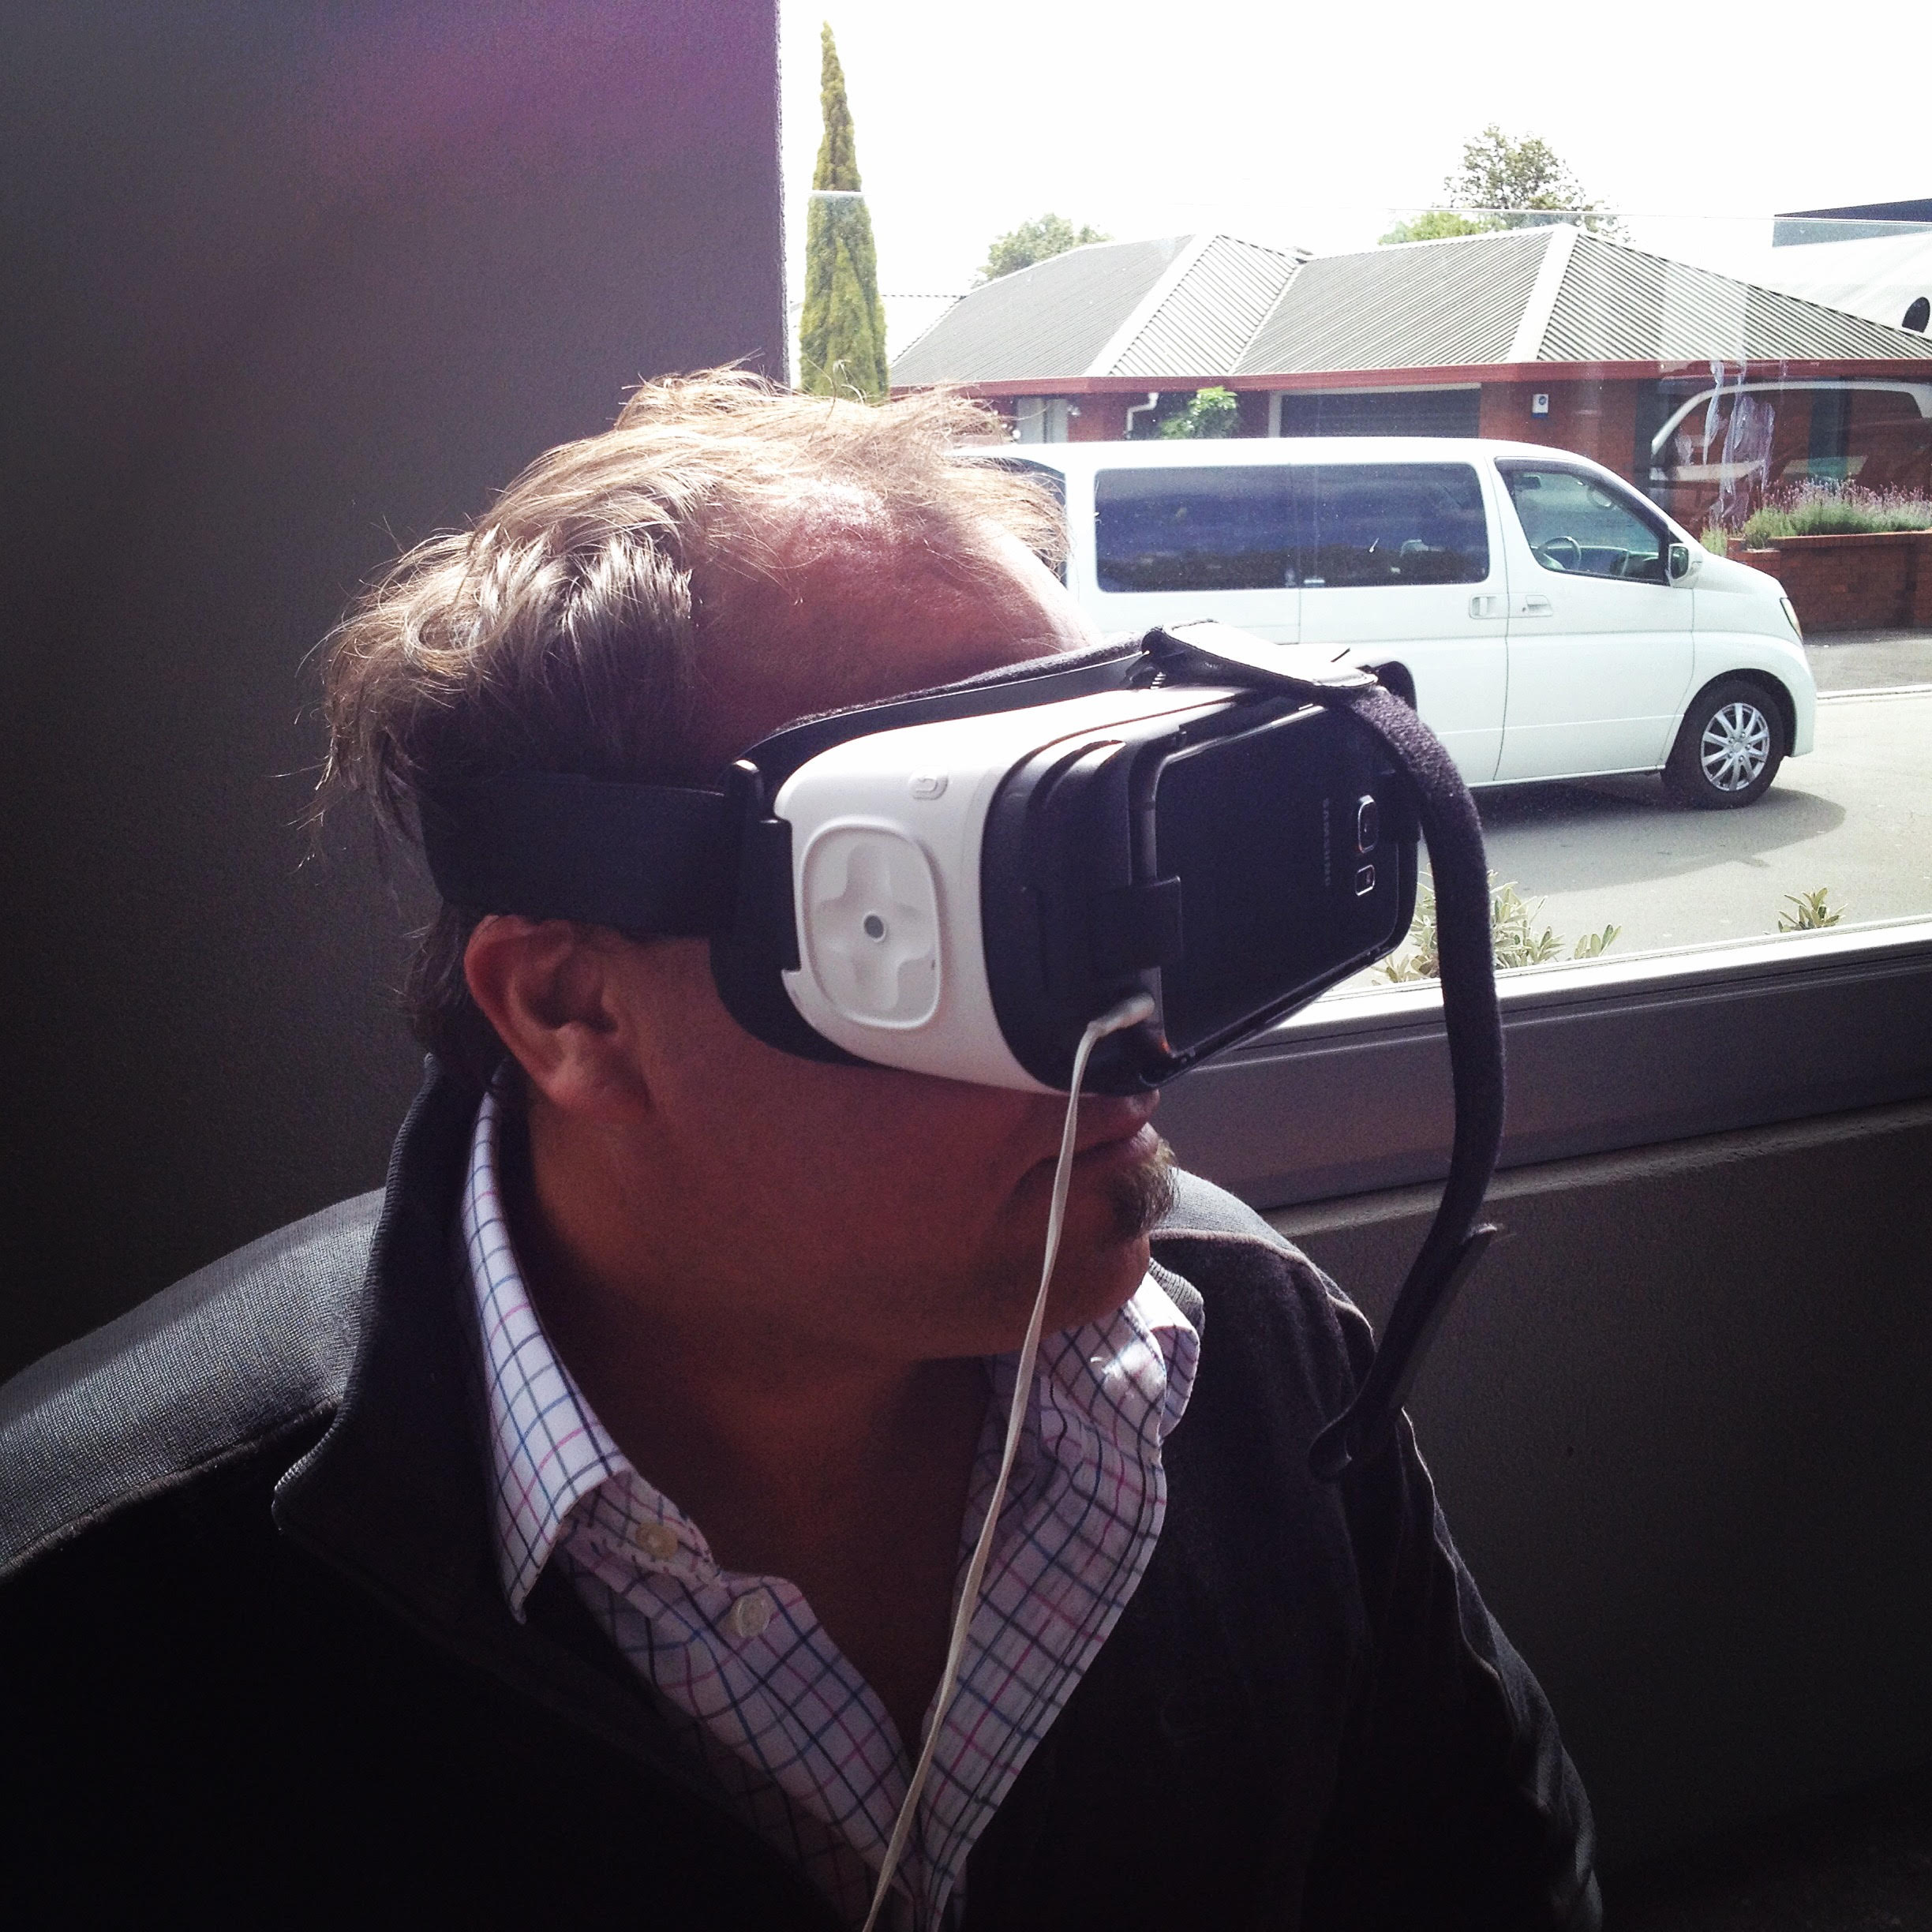 Paul tries out the Occulus VR headset